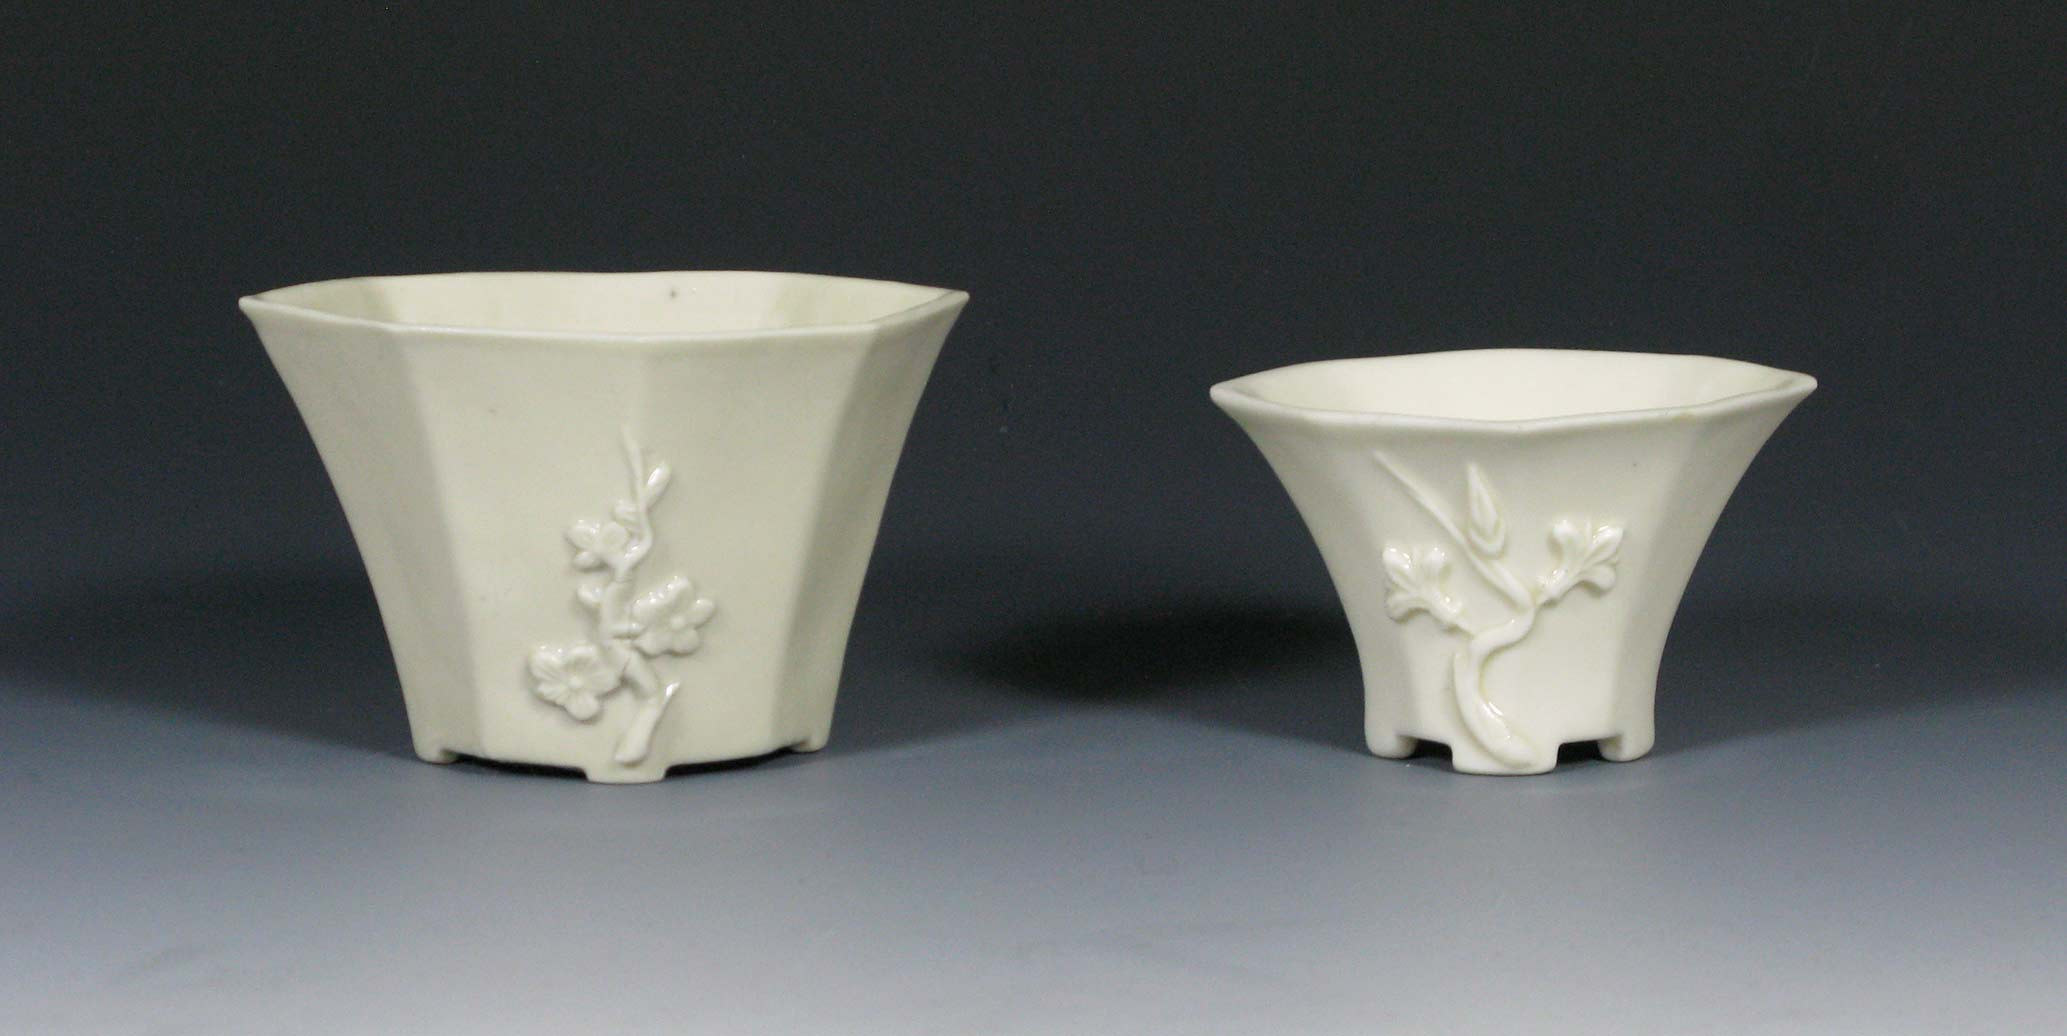 old oriental vases of white porcelain collection in chinese dehua blanc de chine cups